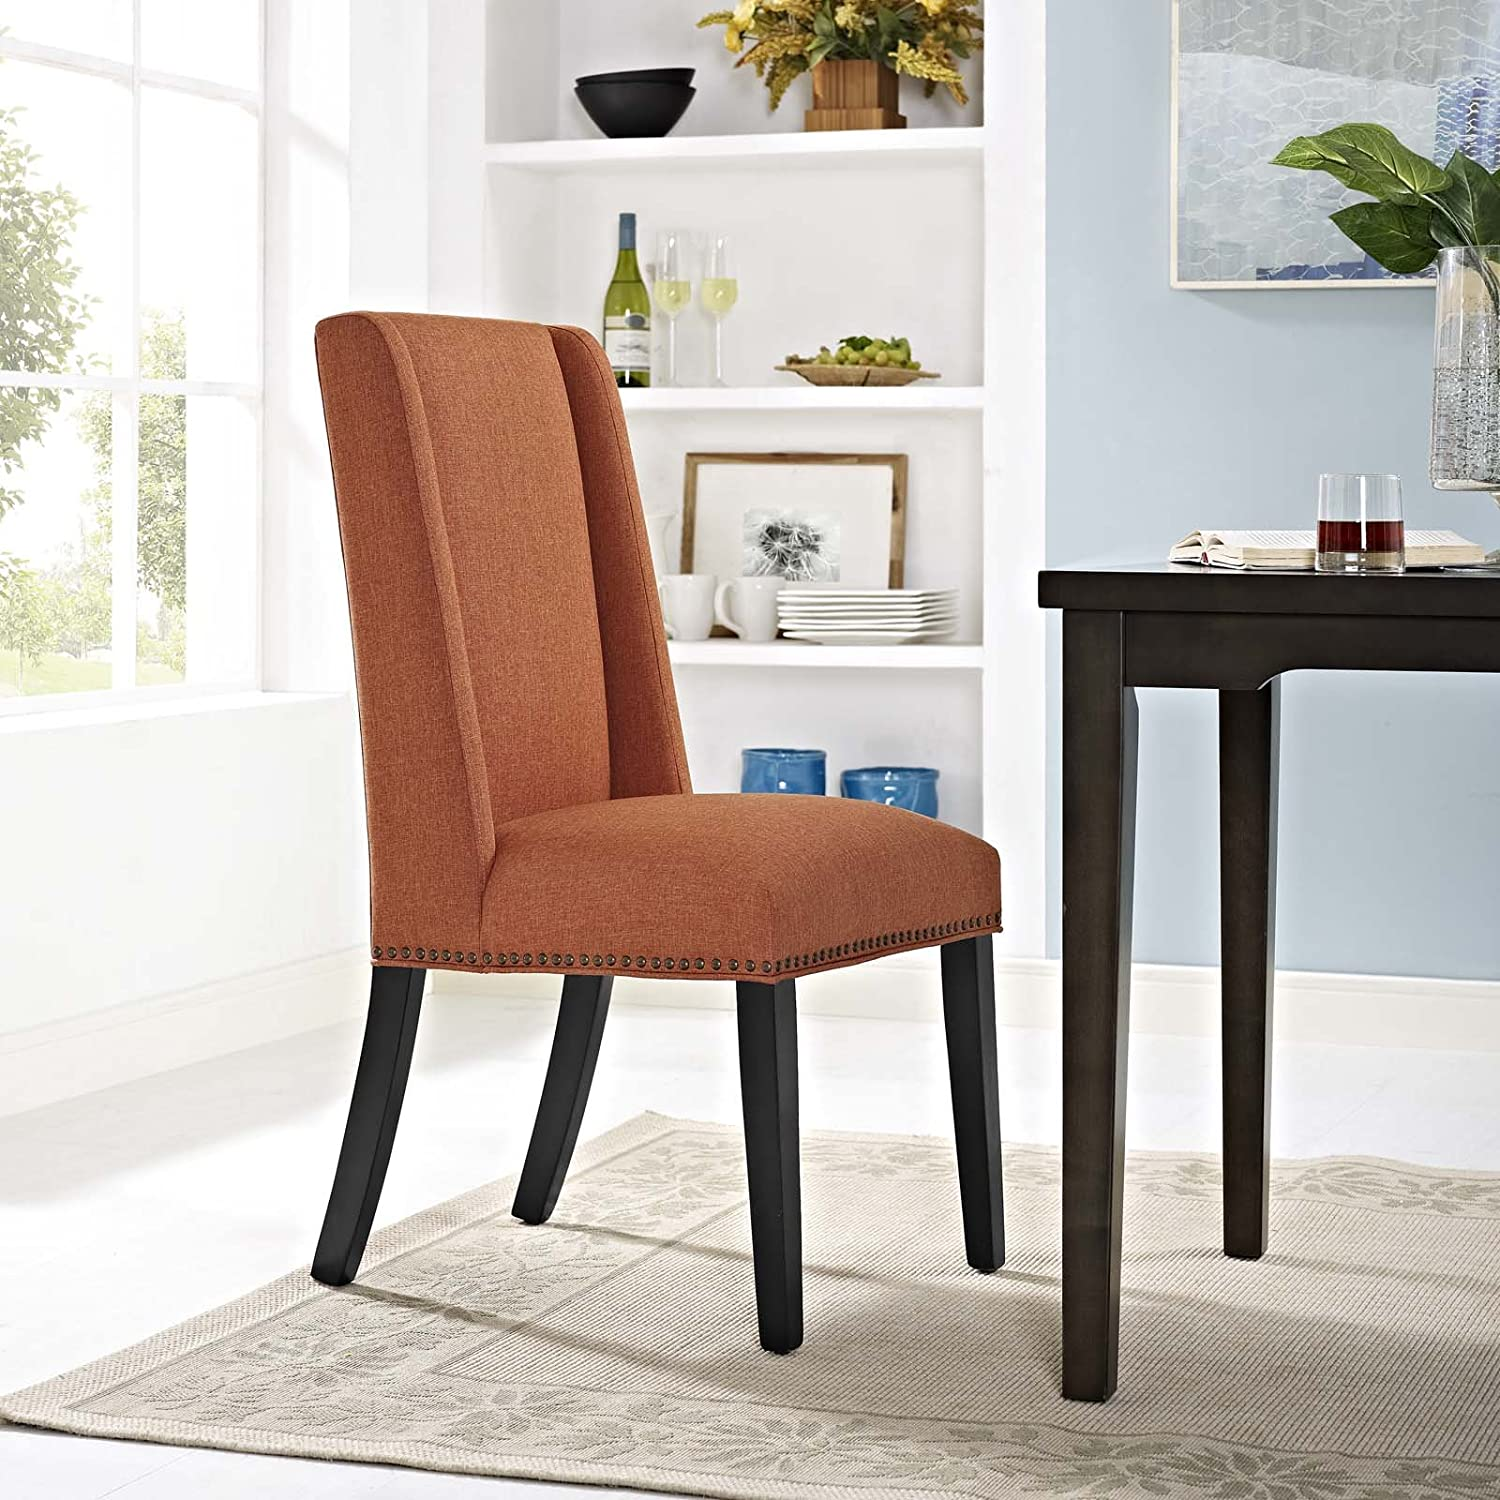 Modway Baron Modern Tall Back Wood Upholstered Fabric Parsons Kitchen and Dining Room Chair with Nailhead Trim in Orange